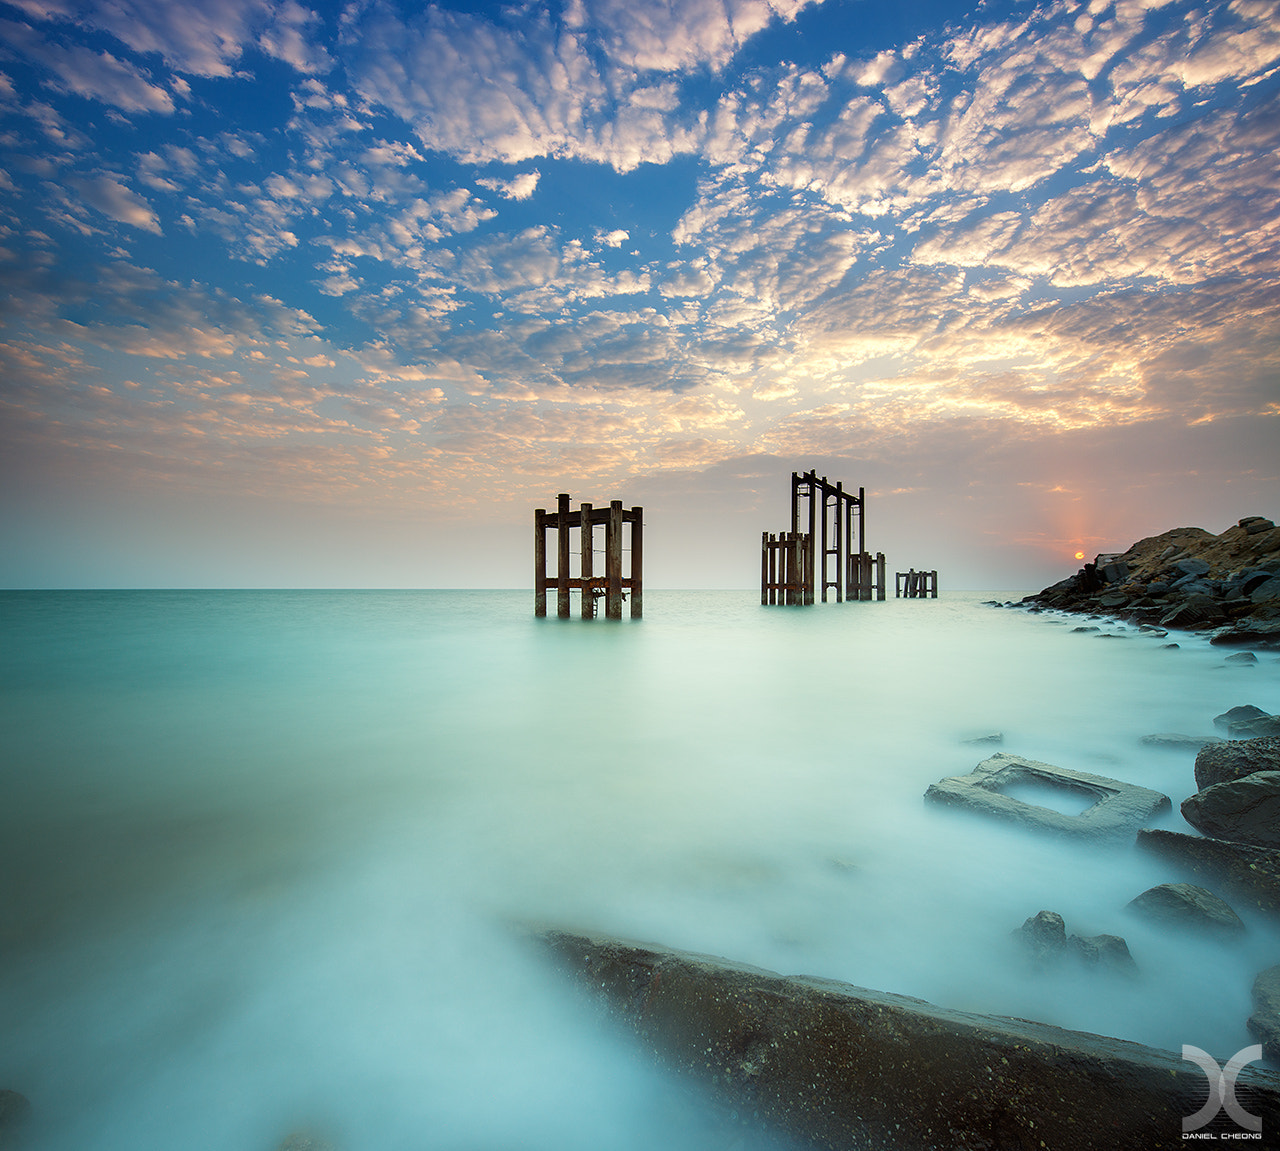 Photograph The Muted Sunrise by Daniel Cheong on 500px